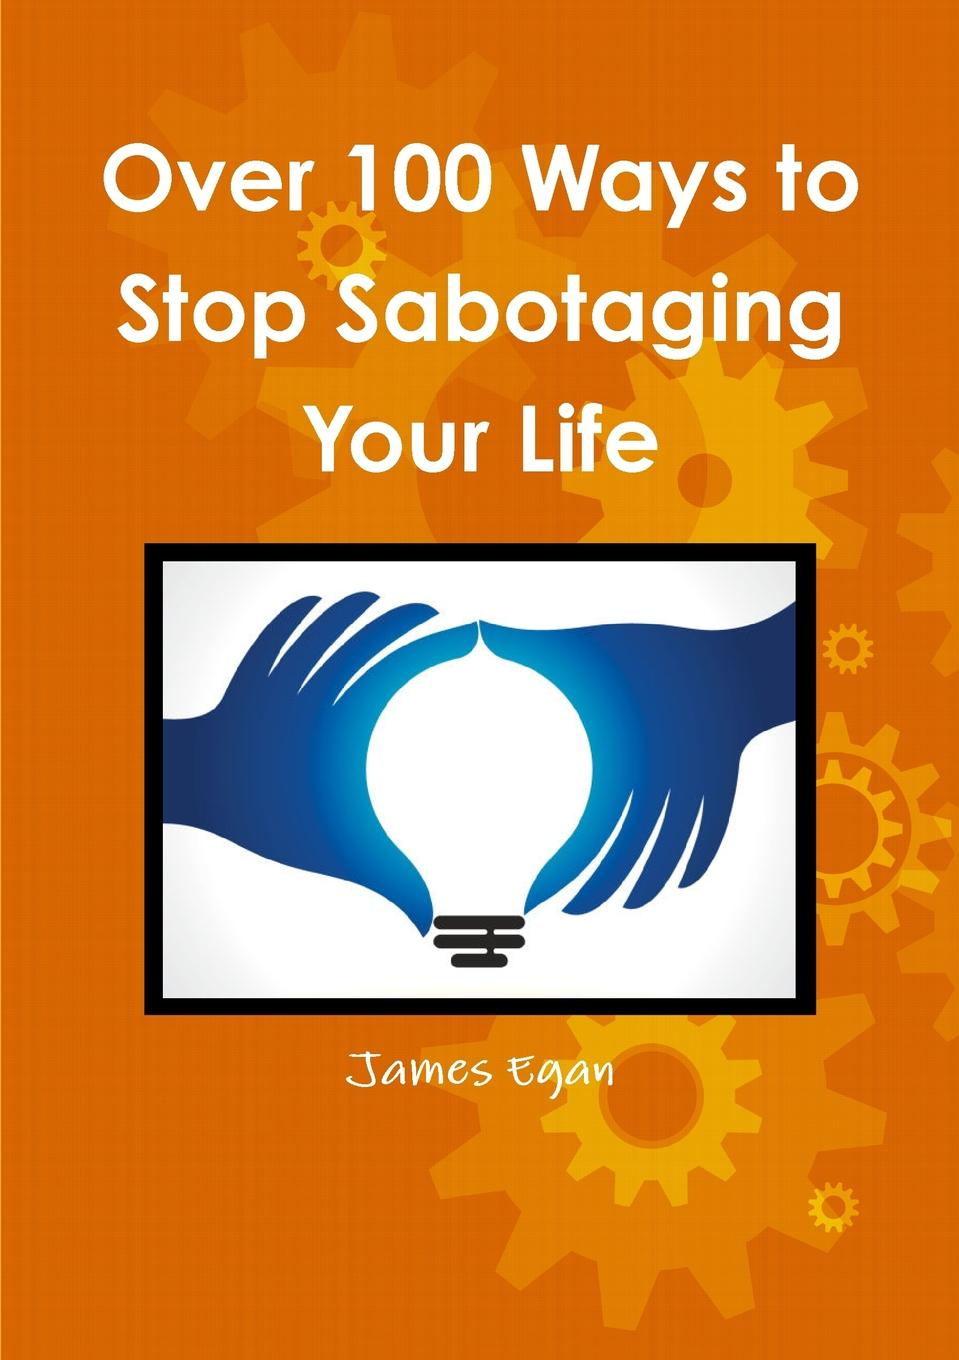 James Egan Over 100 Ways to Stop Sabotaging Your Life 60 ways to change your life